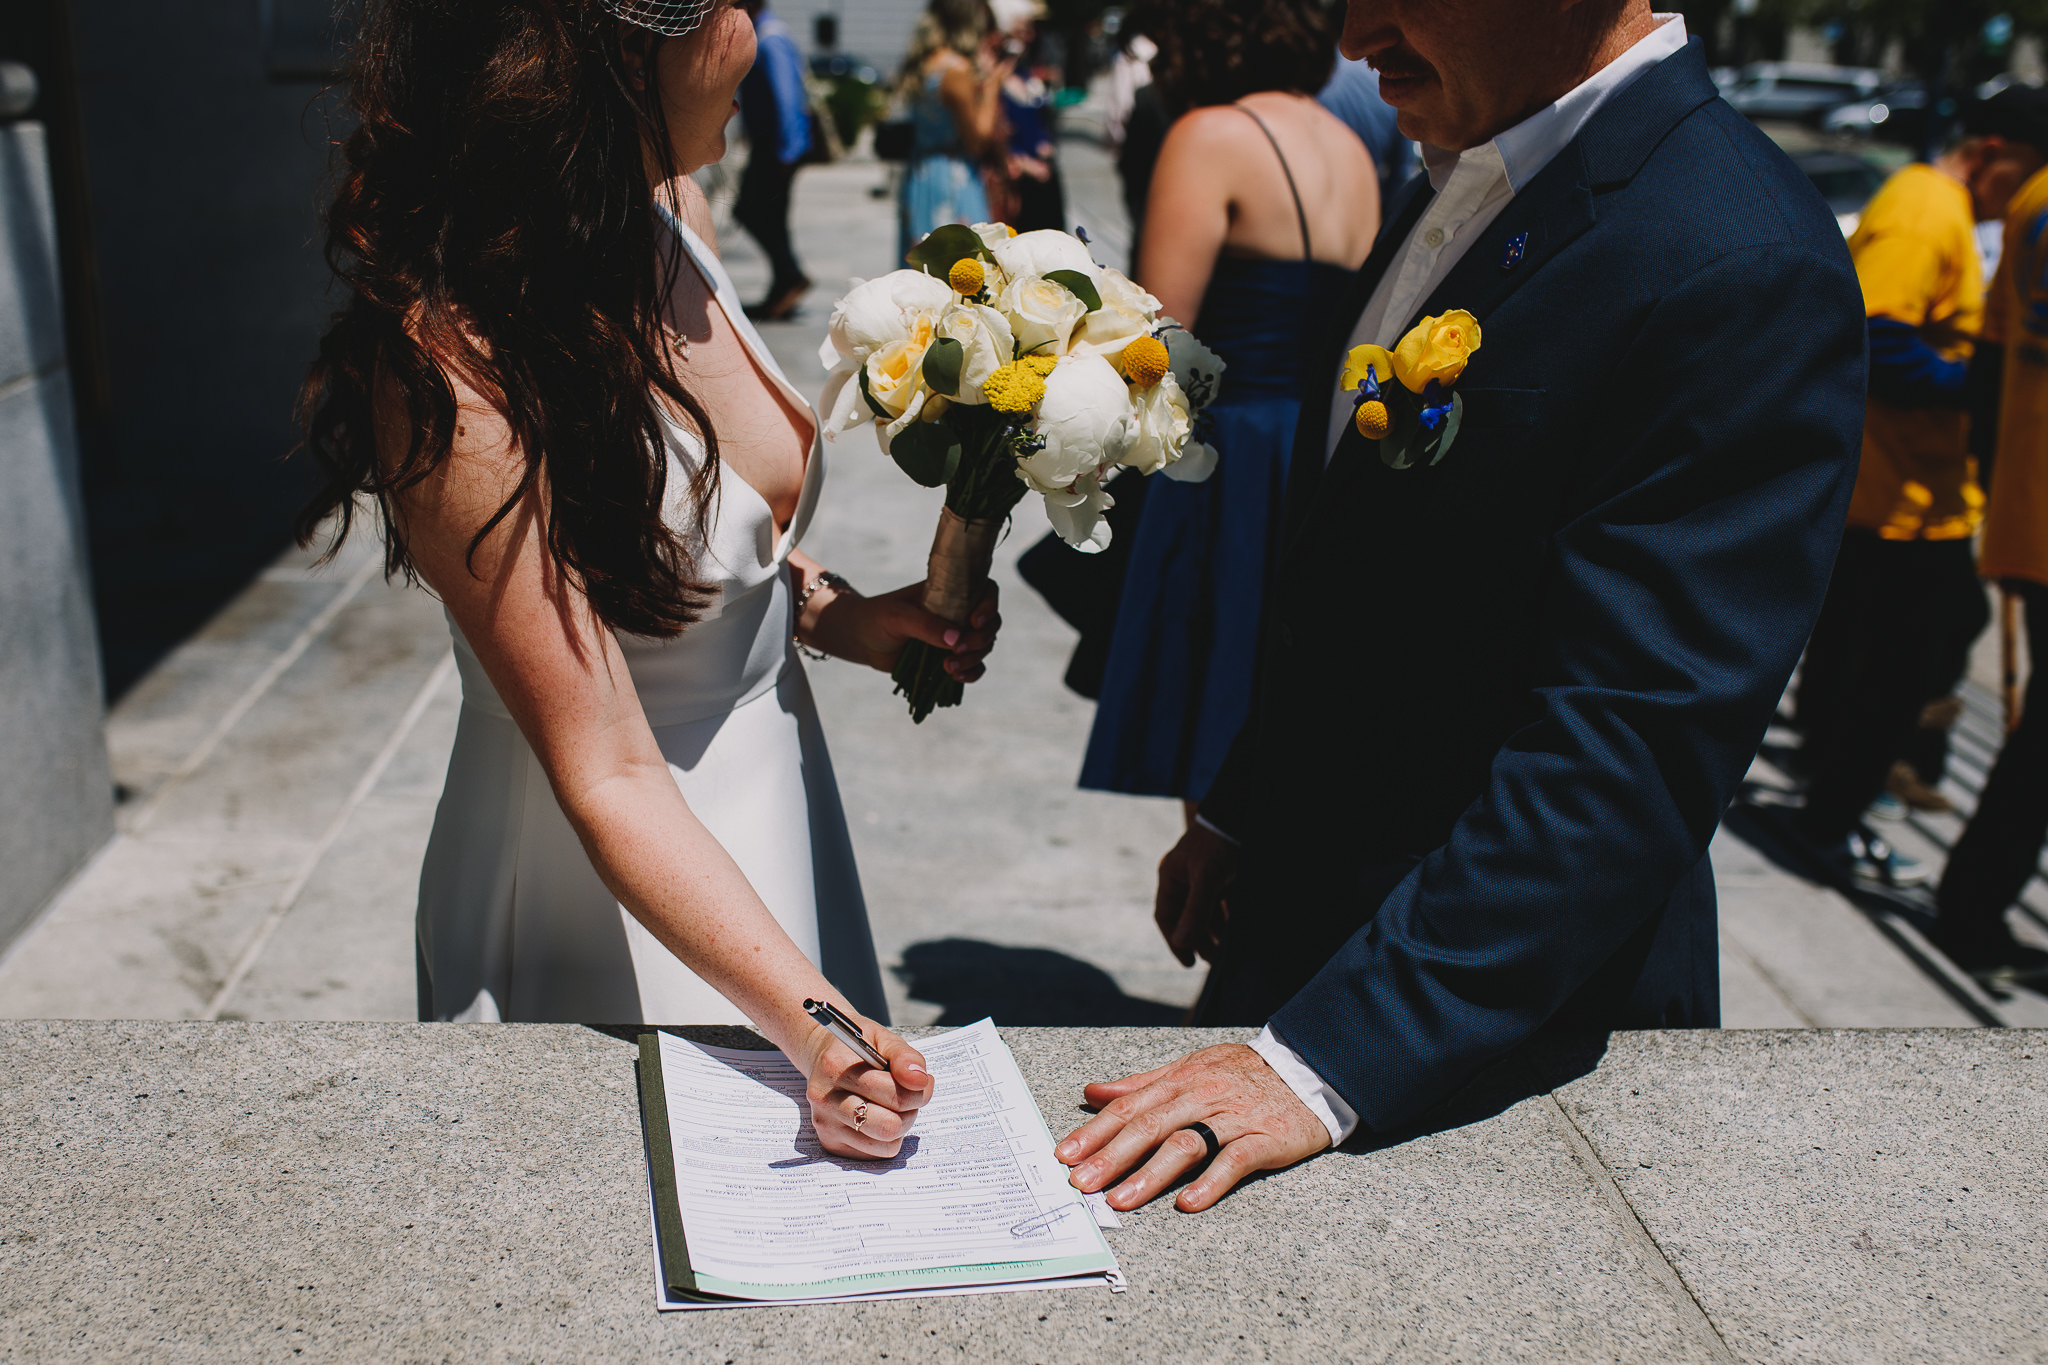 Archer Inspired Photography SF City Hall Elopement Wedding Lifestyle Documentary Affordable Photographer-233.jpg